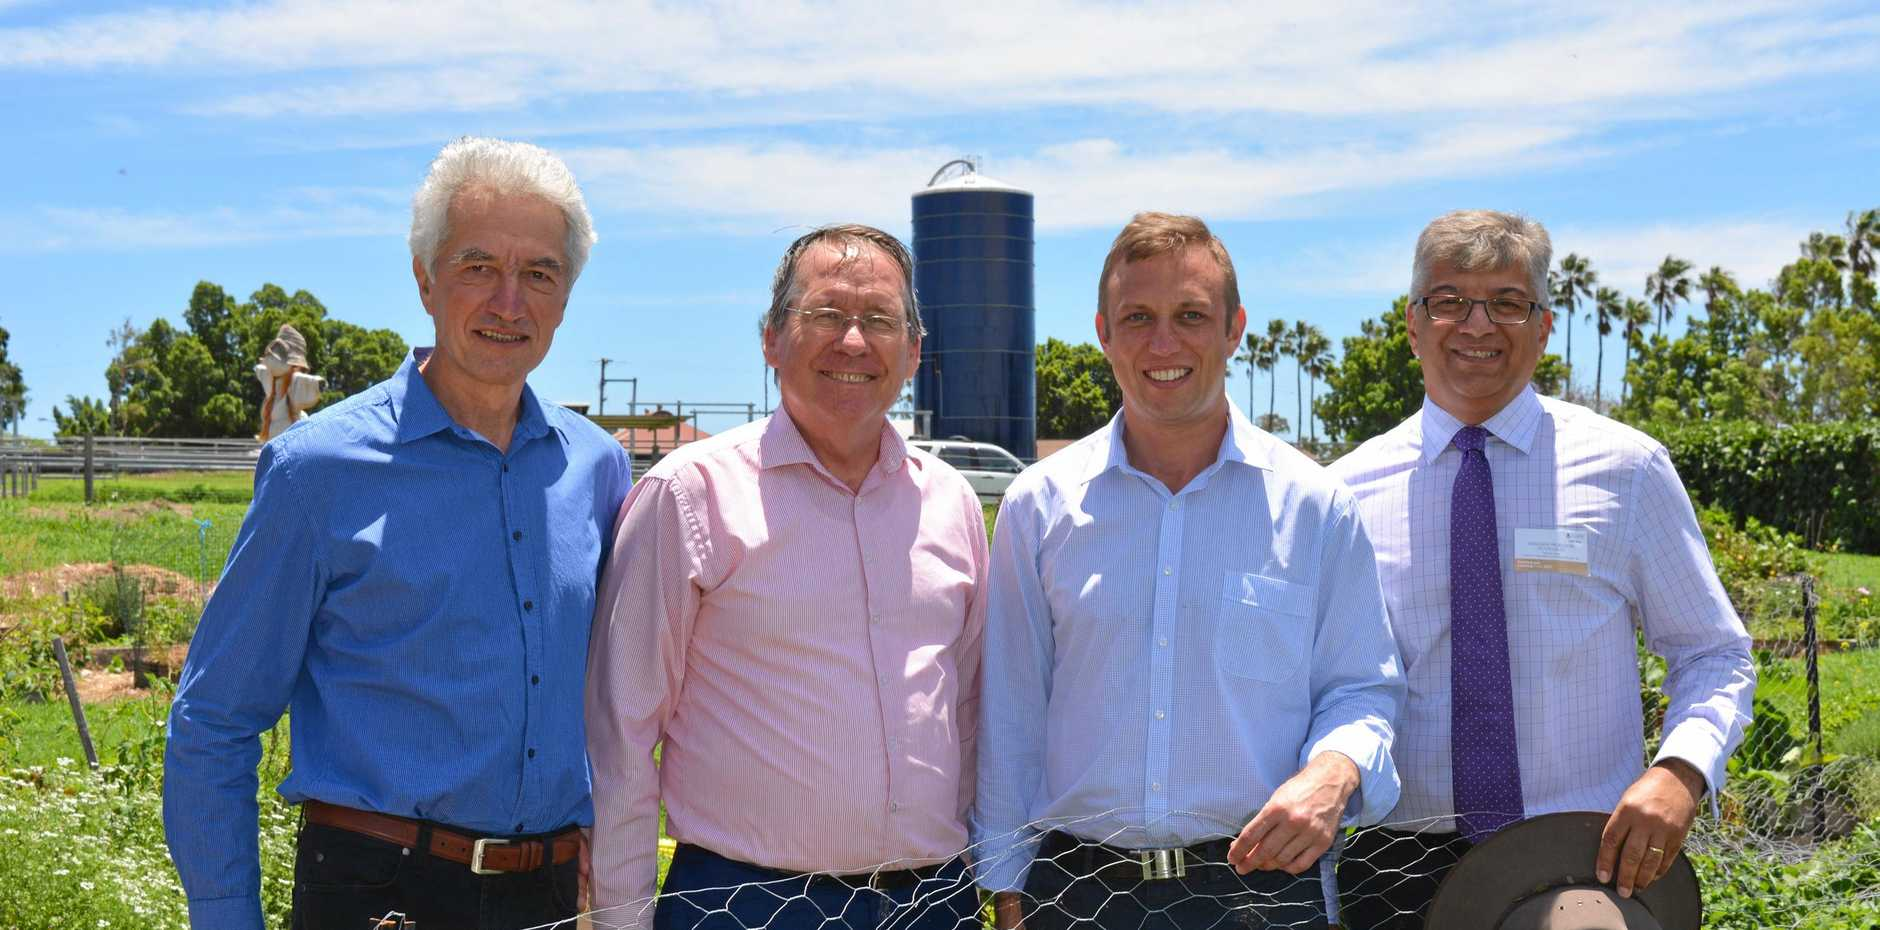 VALUABLE RESEARCH: UQ's Centre for Recycling of Oragnic Wastes and Nutrients (CROWN) director Johannes Biala, Member for Ipswich West Jim Madden, Environment Minister Steven Miles and Deputy Head of the School of Agriculture and Food Sciences Victor Galea.